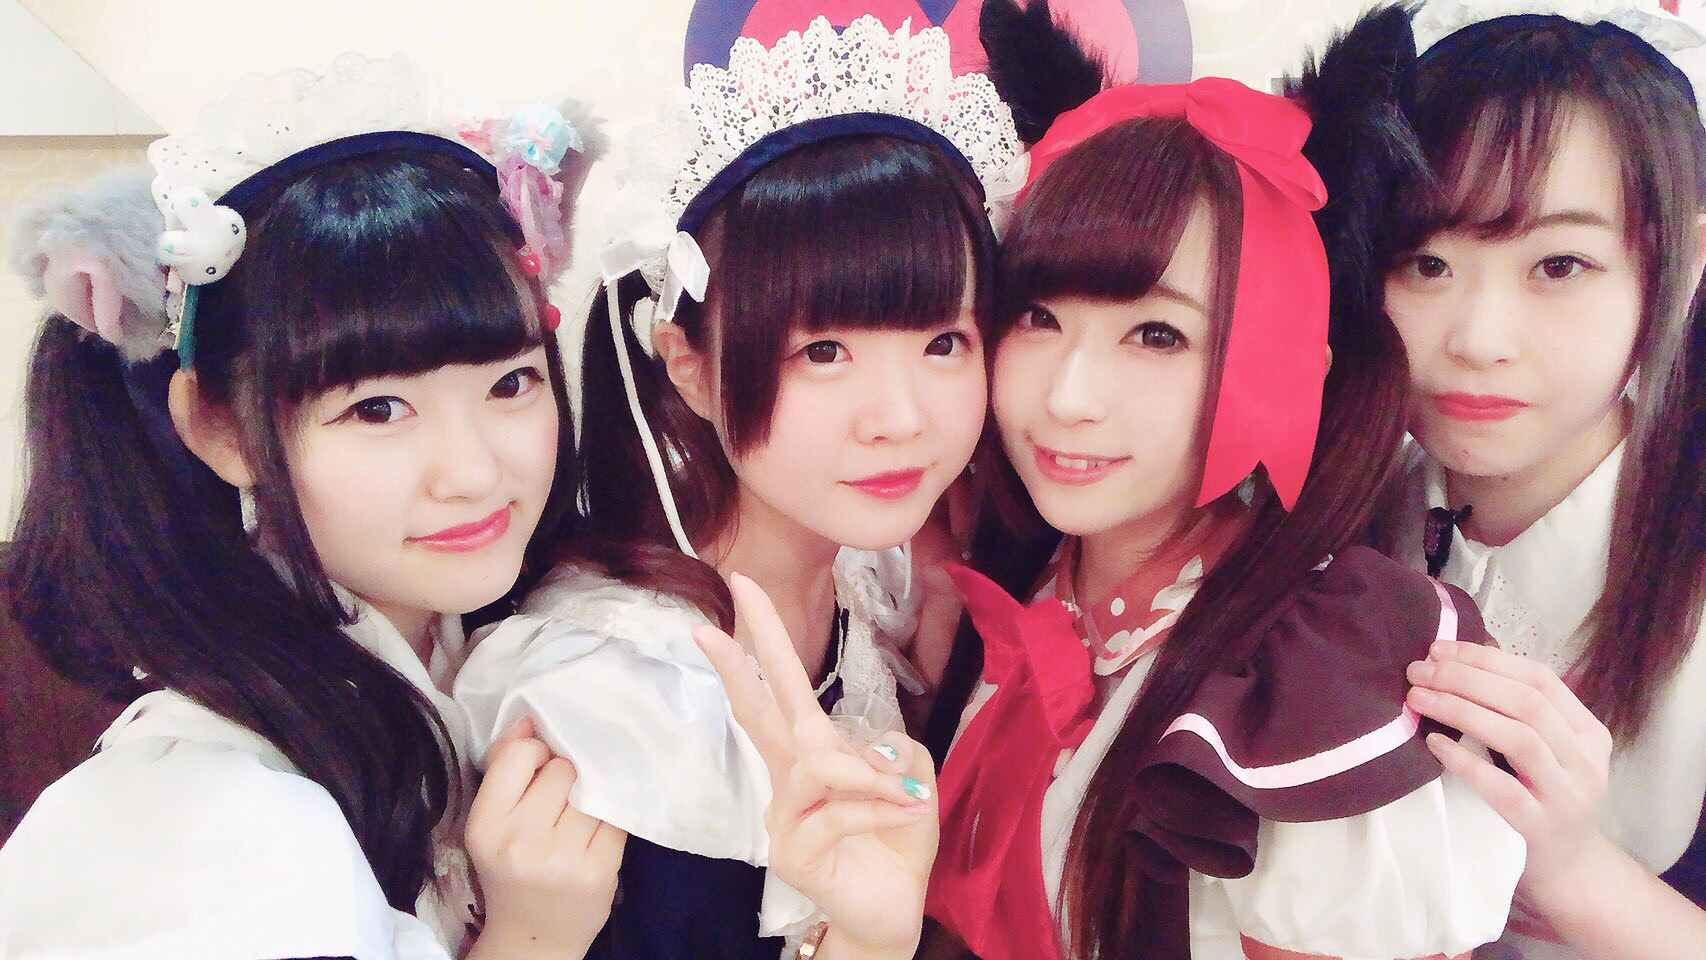 NekoPOP-maidreamin-Twin-Tail-Day-2018-02-02N